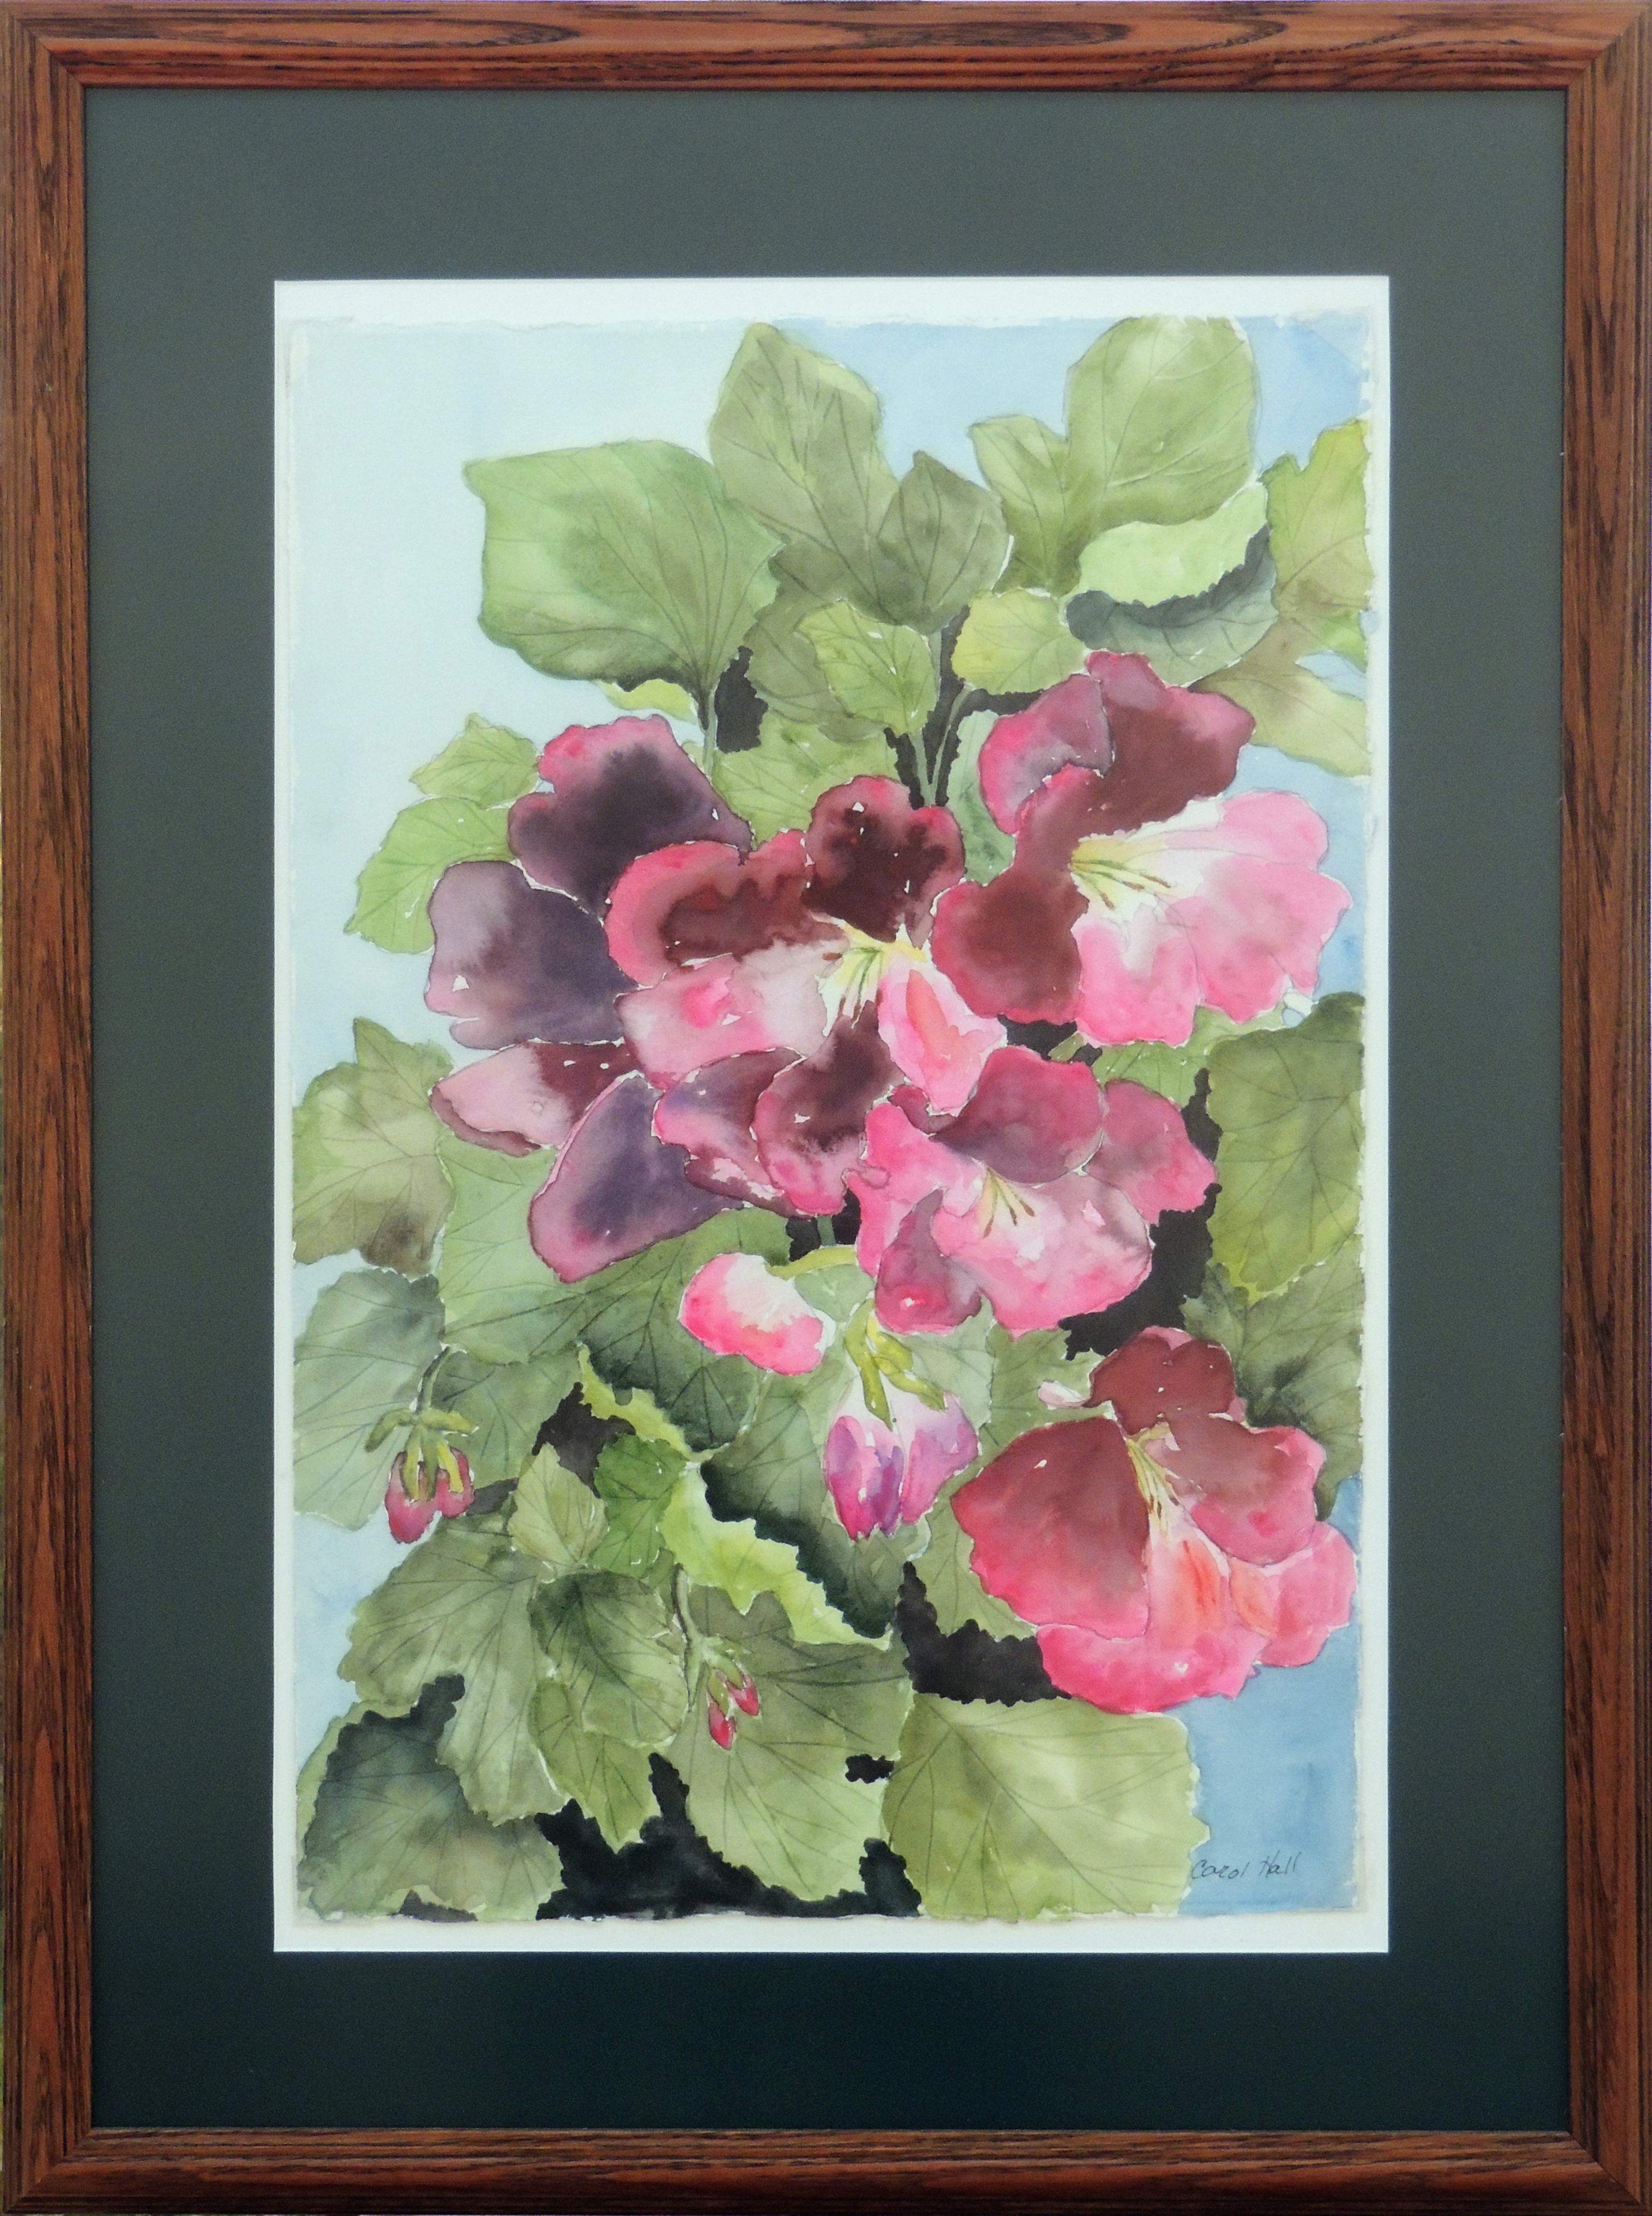 Carol Hall | BLOOMING TIME | Watercolor